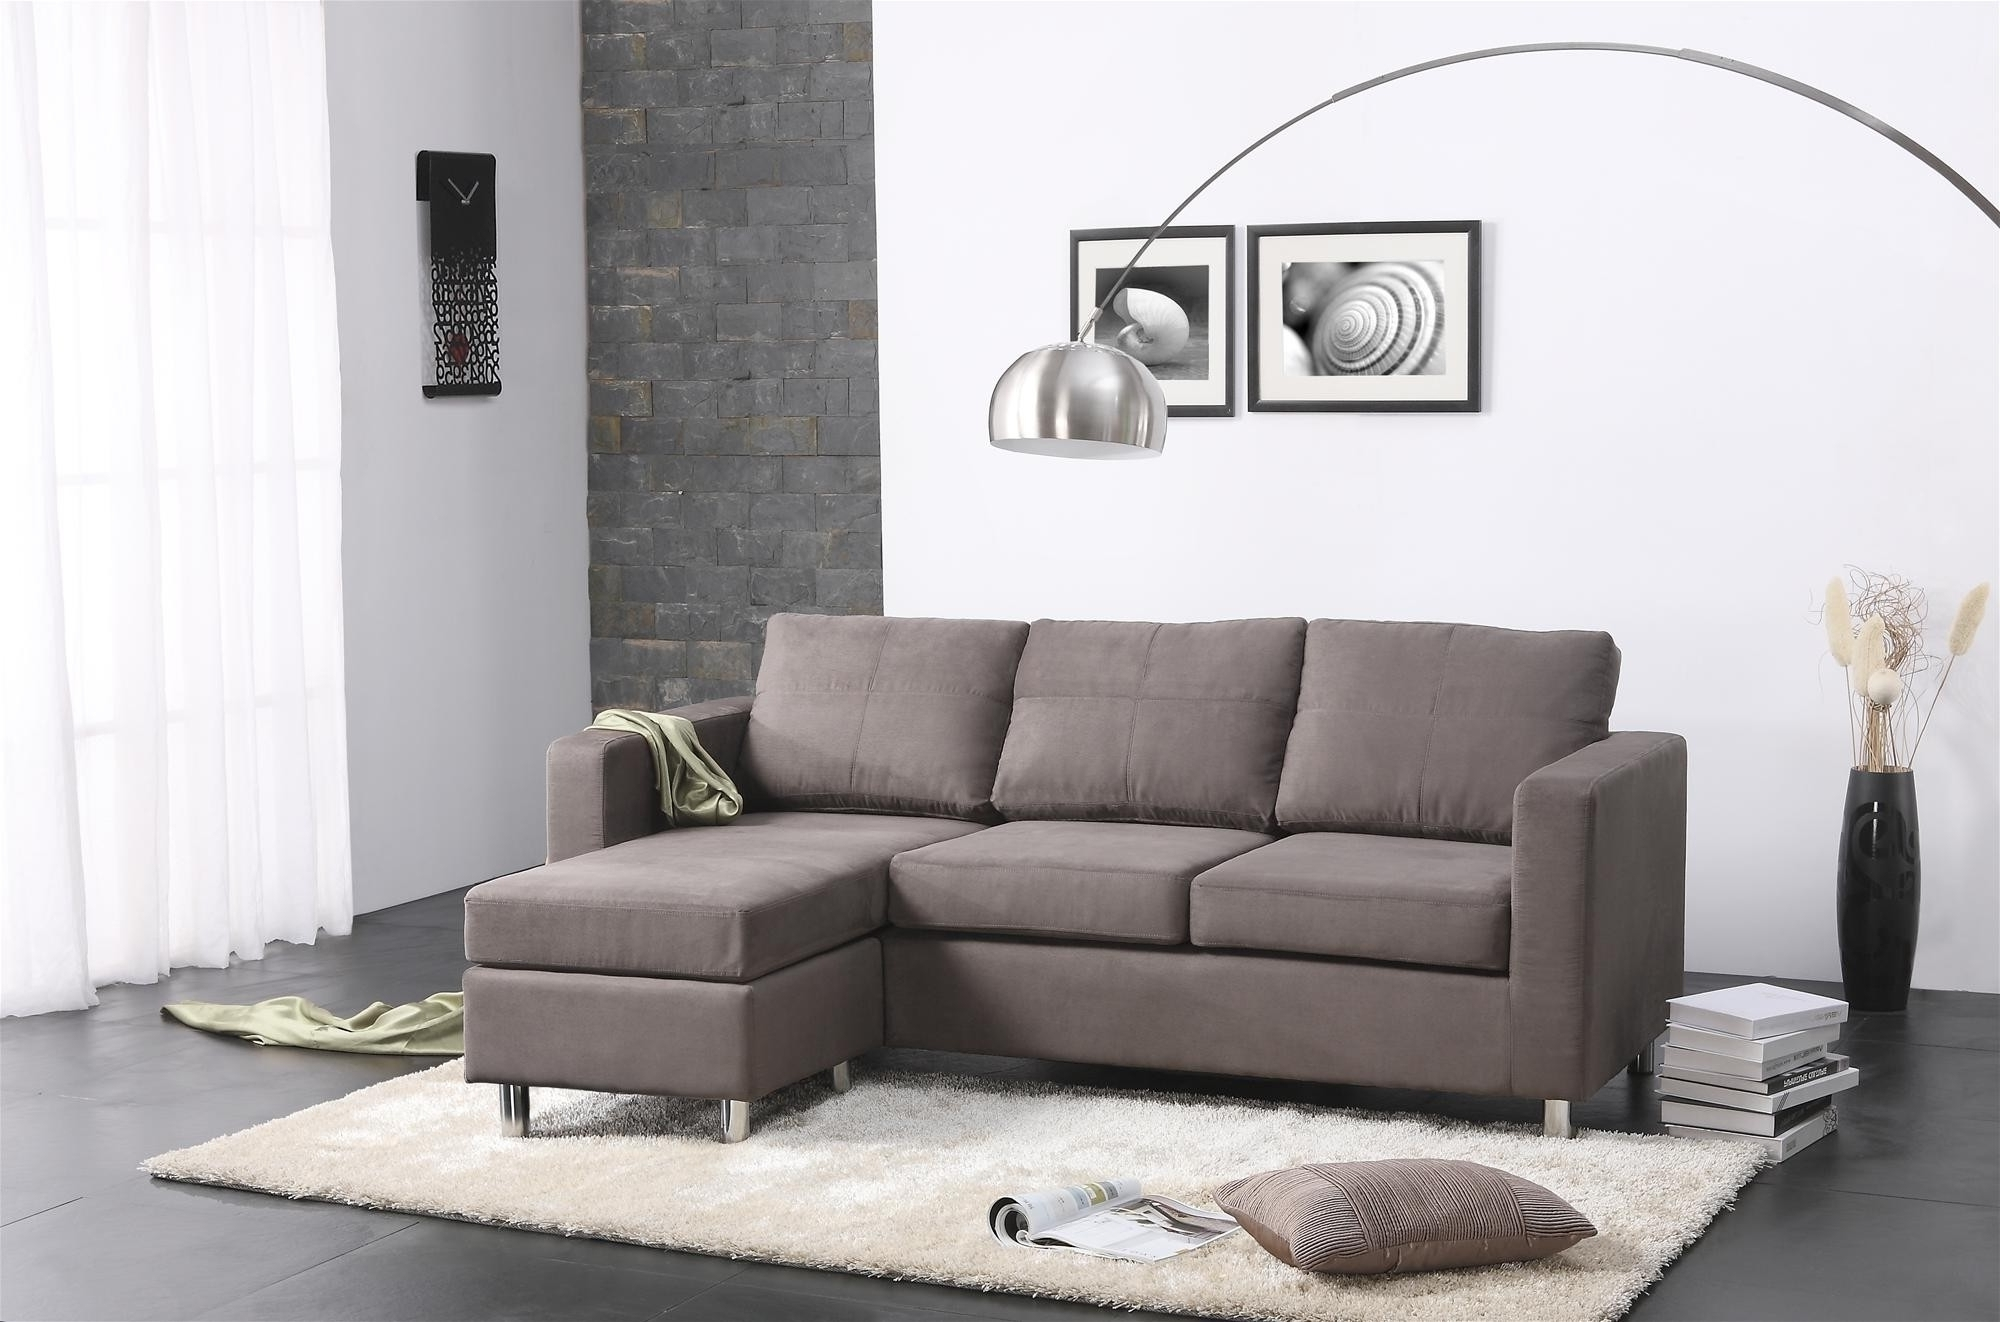 Most Current Incredible Condo Sectional Sofa – Mediasupload Throughout Sectional Sofas For Condos (View 9 of 20)